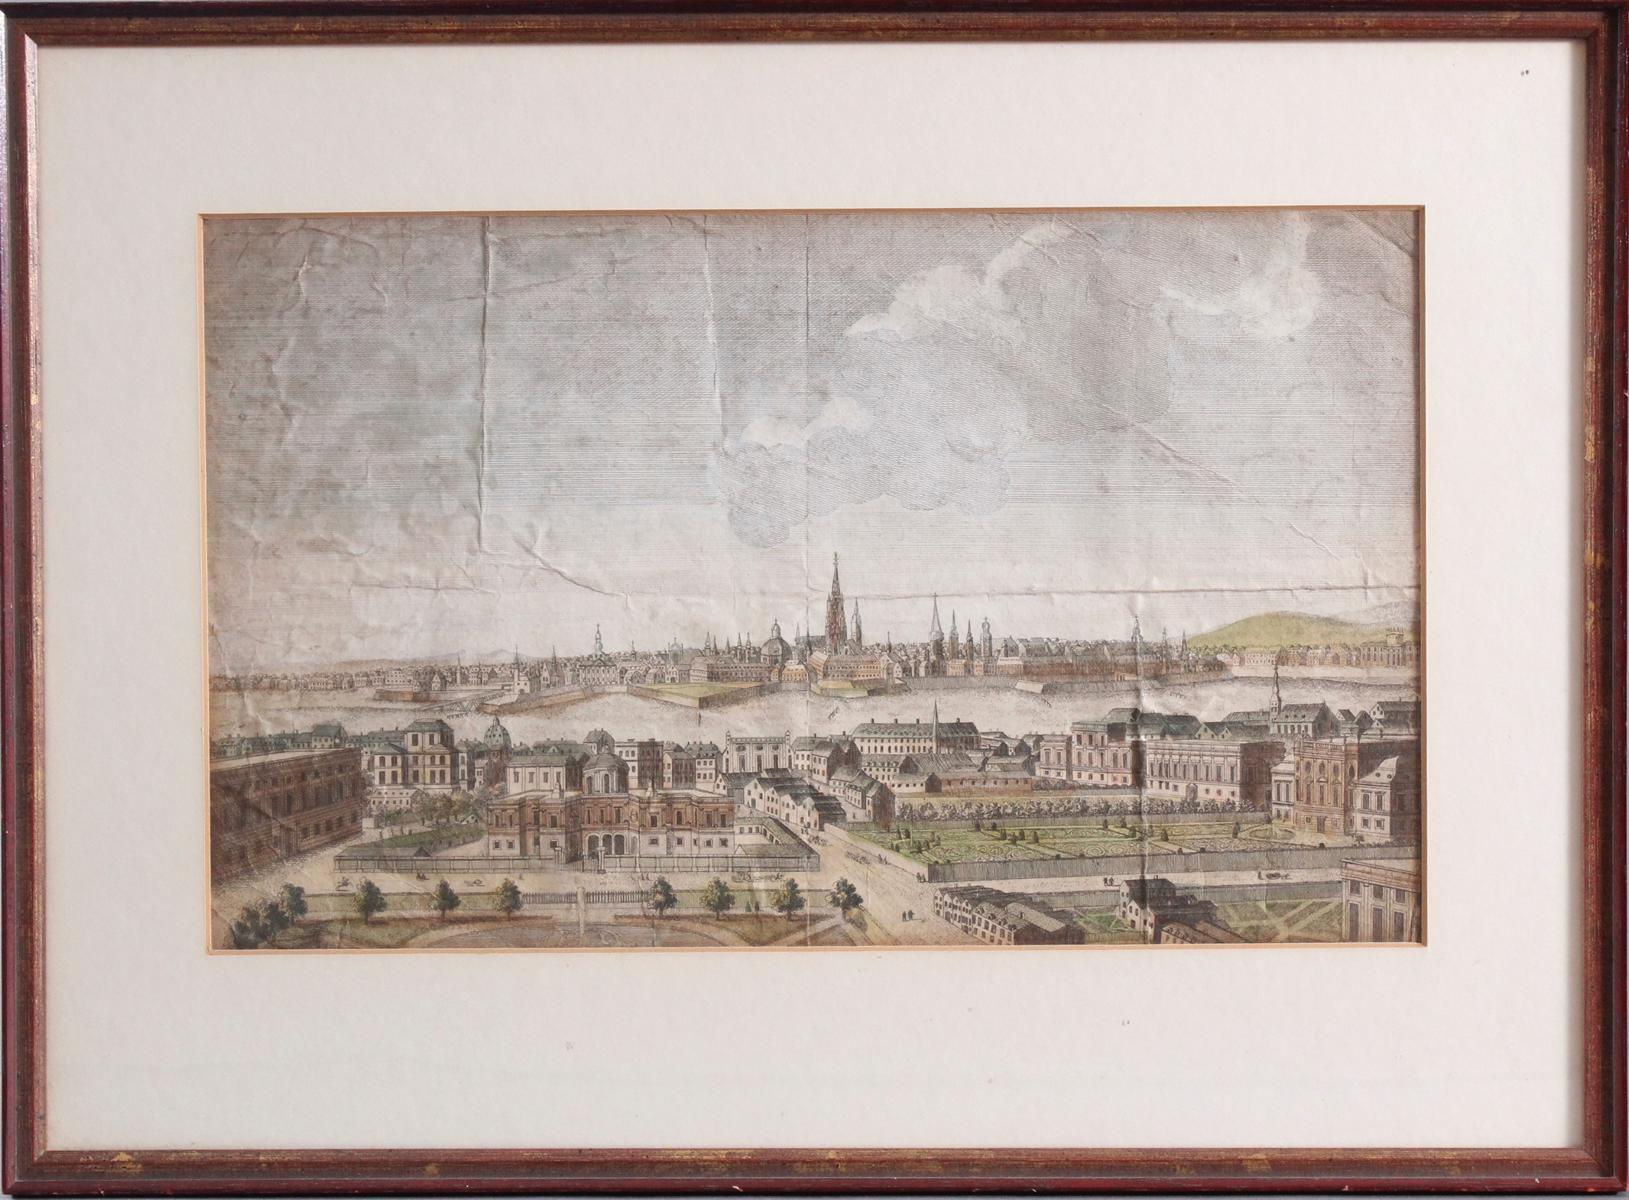 Kupferstich aus dem 18. Jh. A general view of the City of Vienna, anonymer Künstler